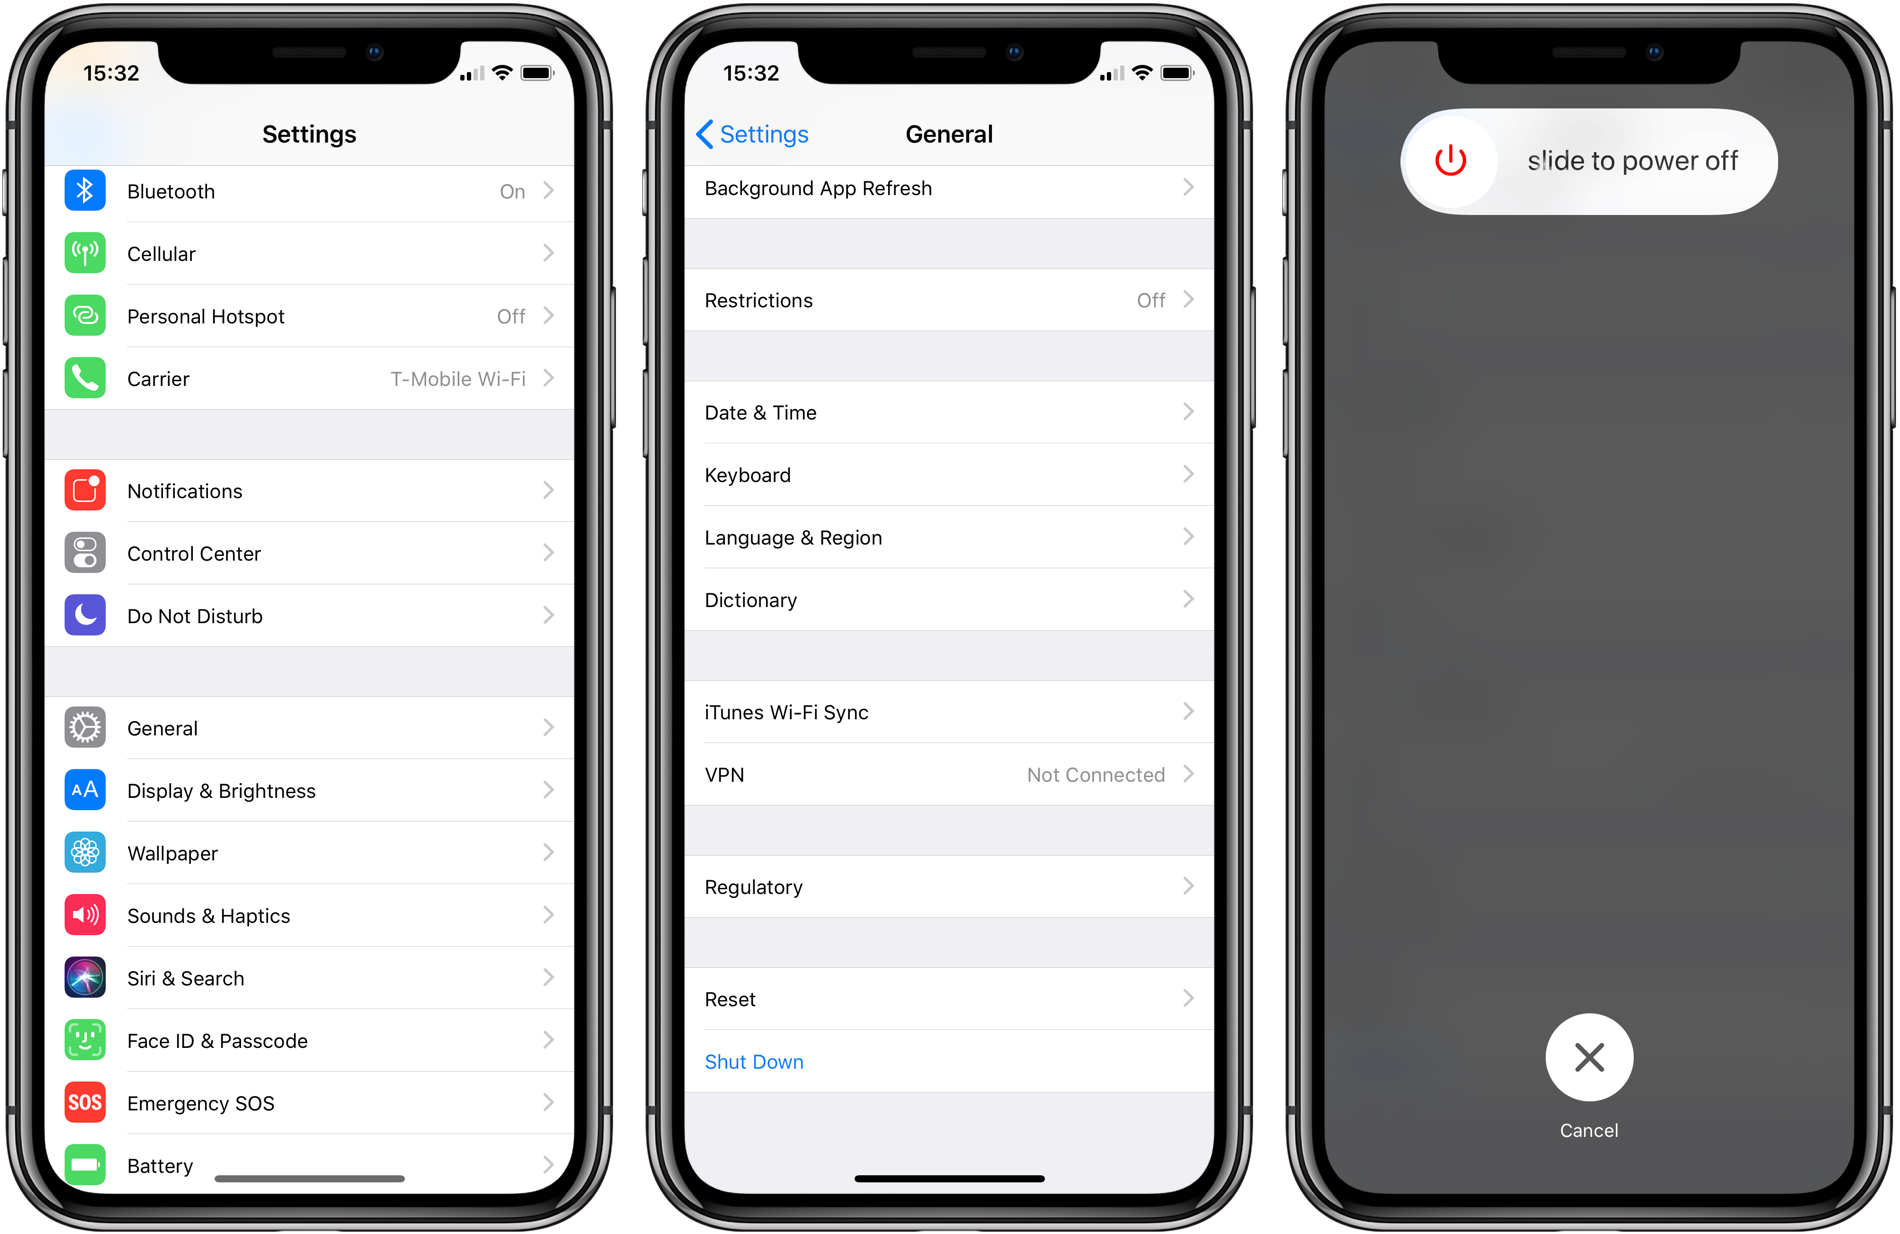 How To Turn Off Iphone X 9to5mac